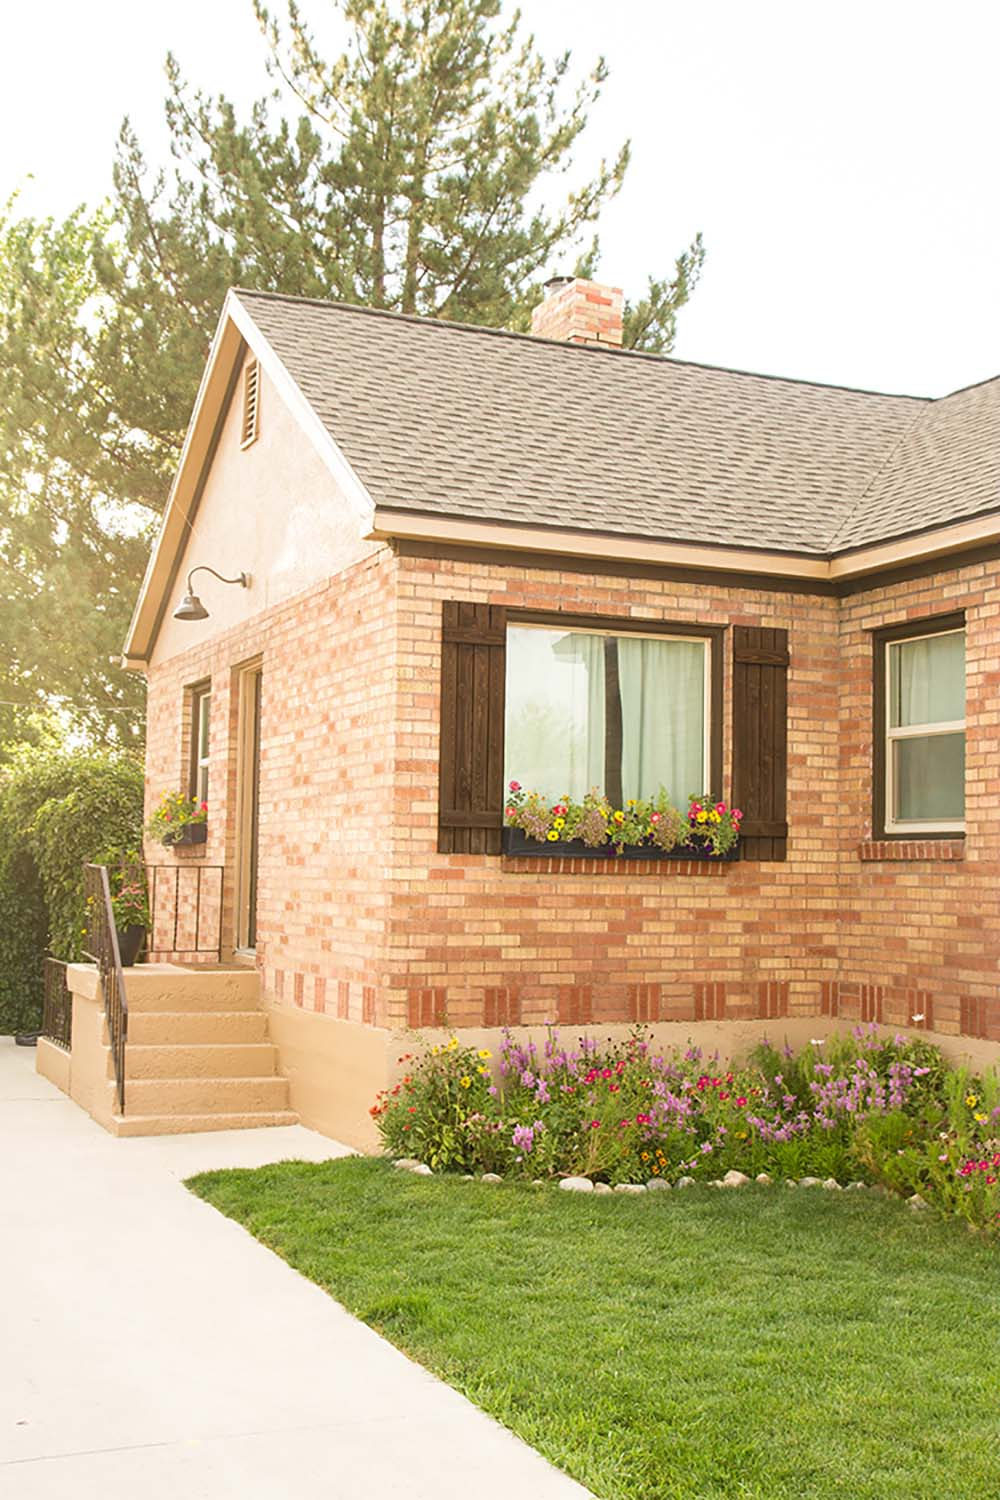 The side entrance of a brick home with a landscaped yard.